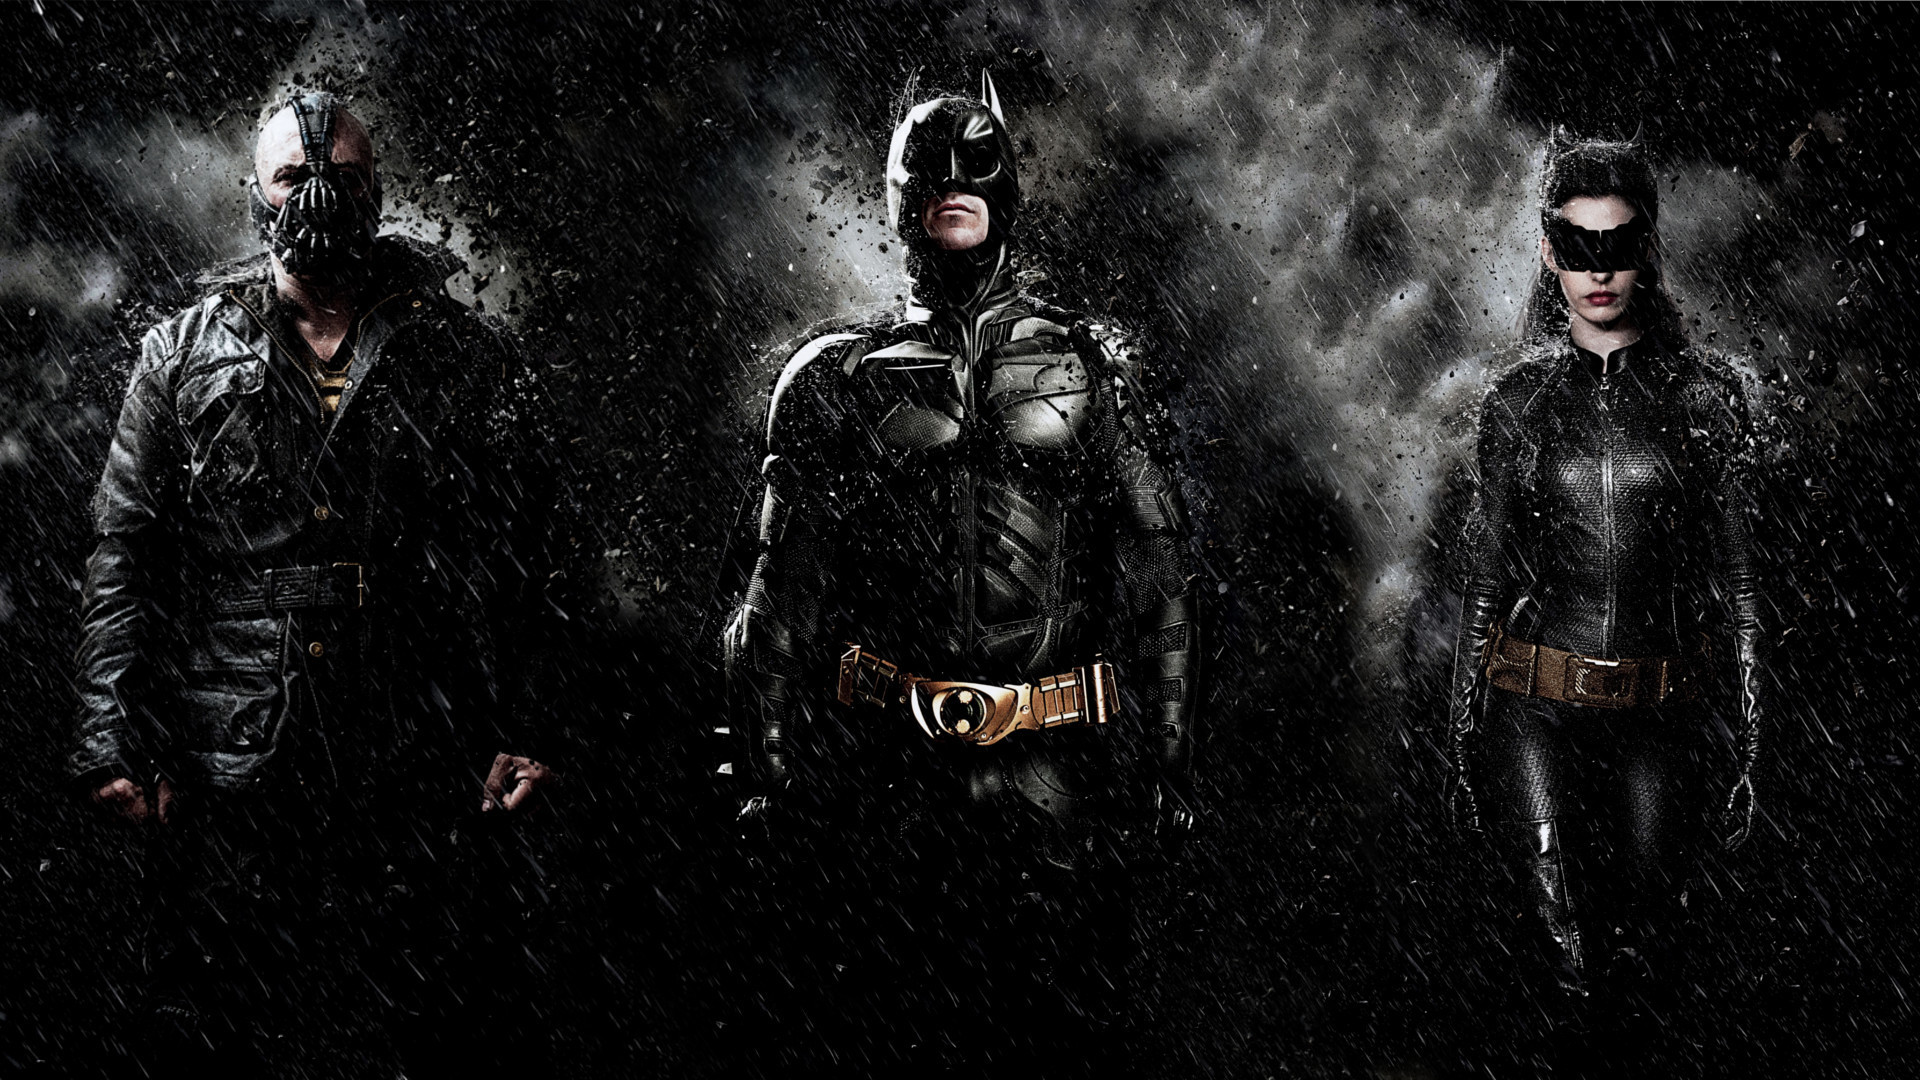 the dark knight rises full hd wallpaper and background